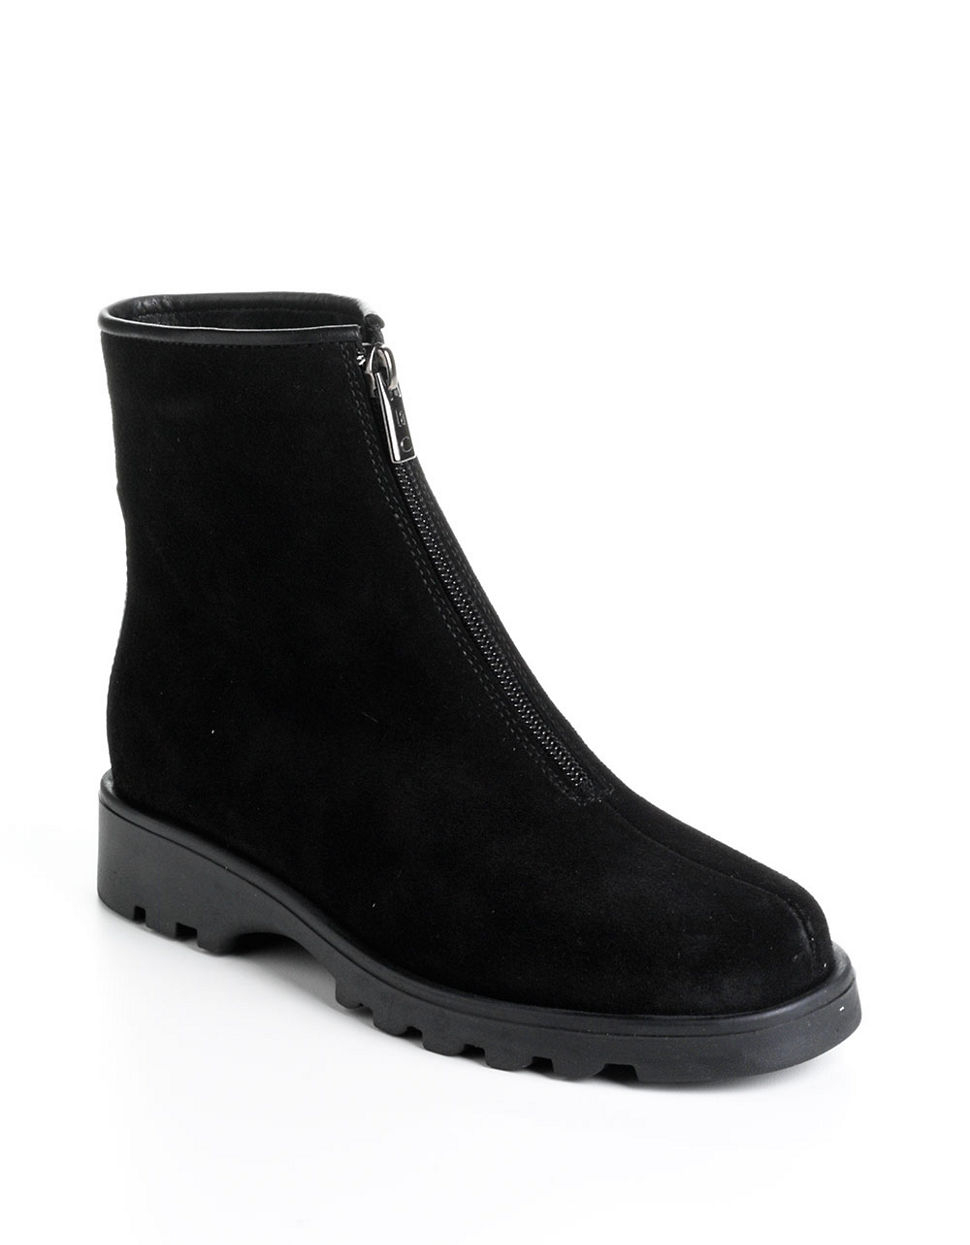 Lyst La Canadienne Kathy Suede Ankle Boots In Black